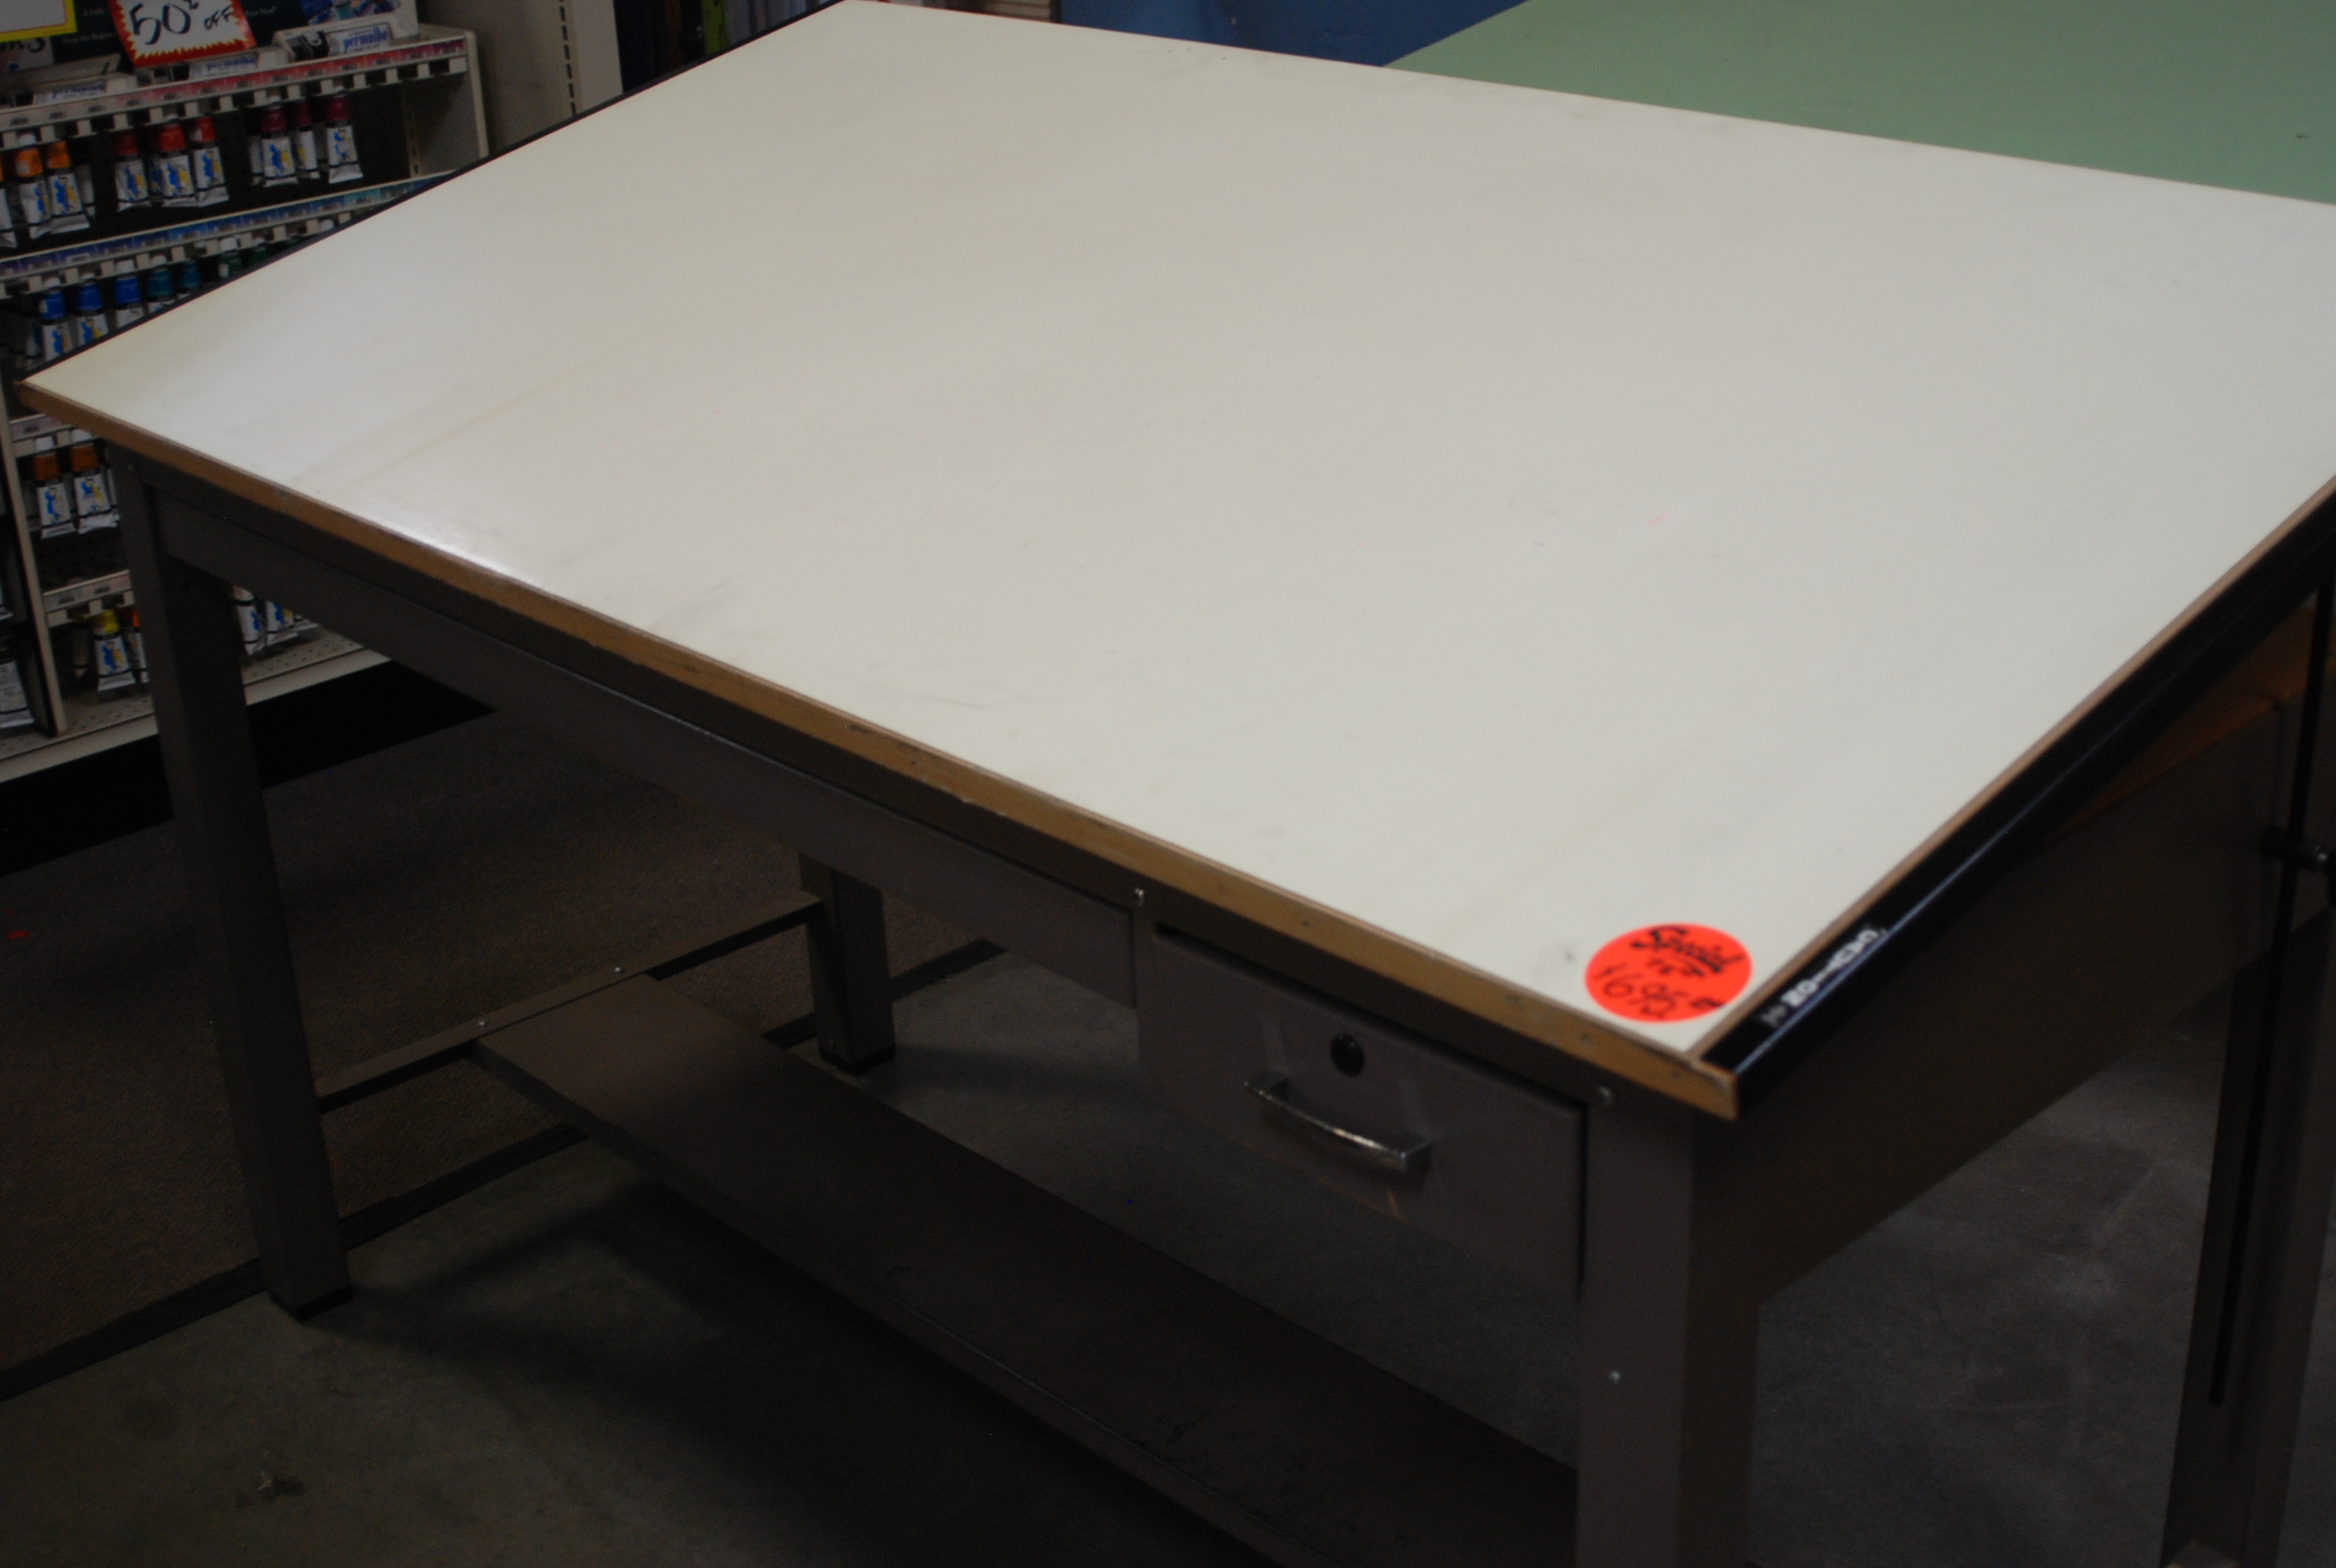 Used drafting tables hoppers drafting furniture a pre rented 4 post metal mayline ranger drafting table with borco board cover top size is 375 x 72 includes center drawer and tool drawer malvernweather Gallery